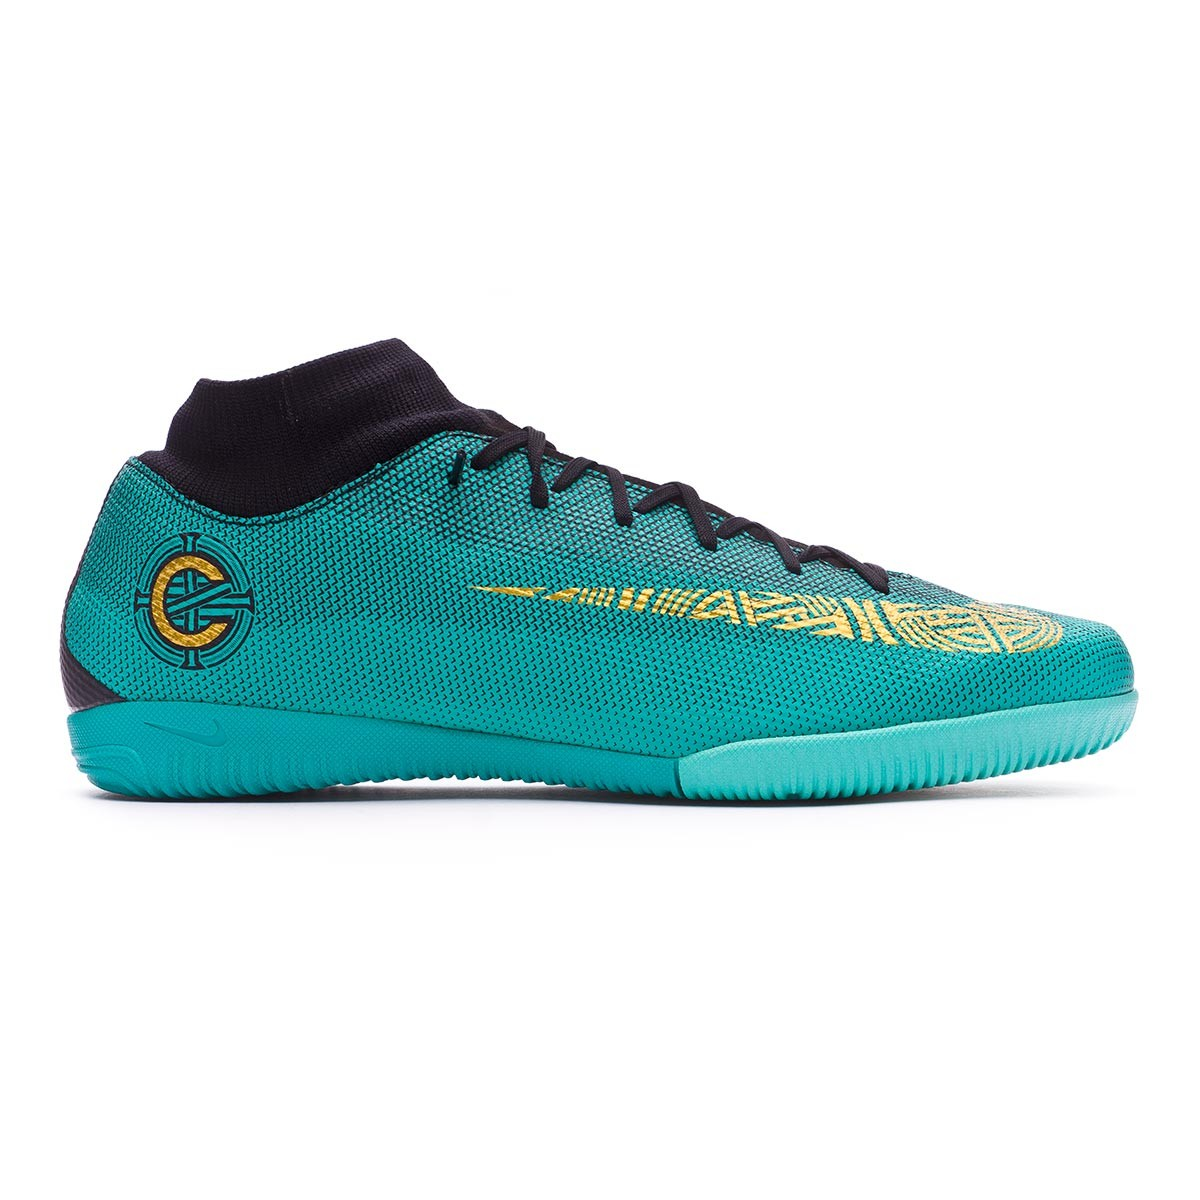 8b75f5061807 Zapatilla Nike Mercurial SuperflyX VI Academy CR7 IC Clear jade-Metallic  vivid gold-Black - Tienda de fútbol Fútbol Emotion